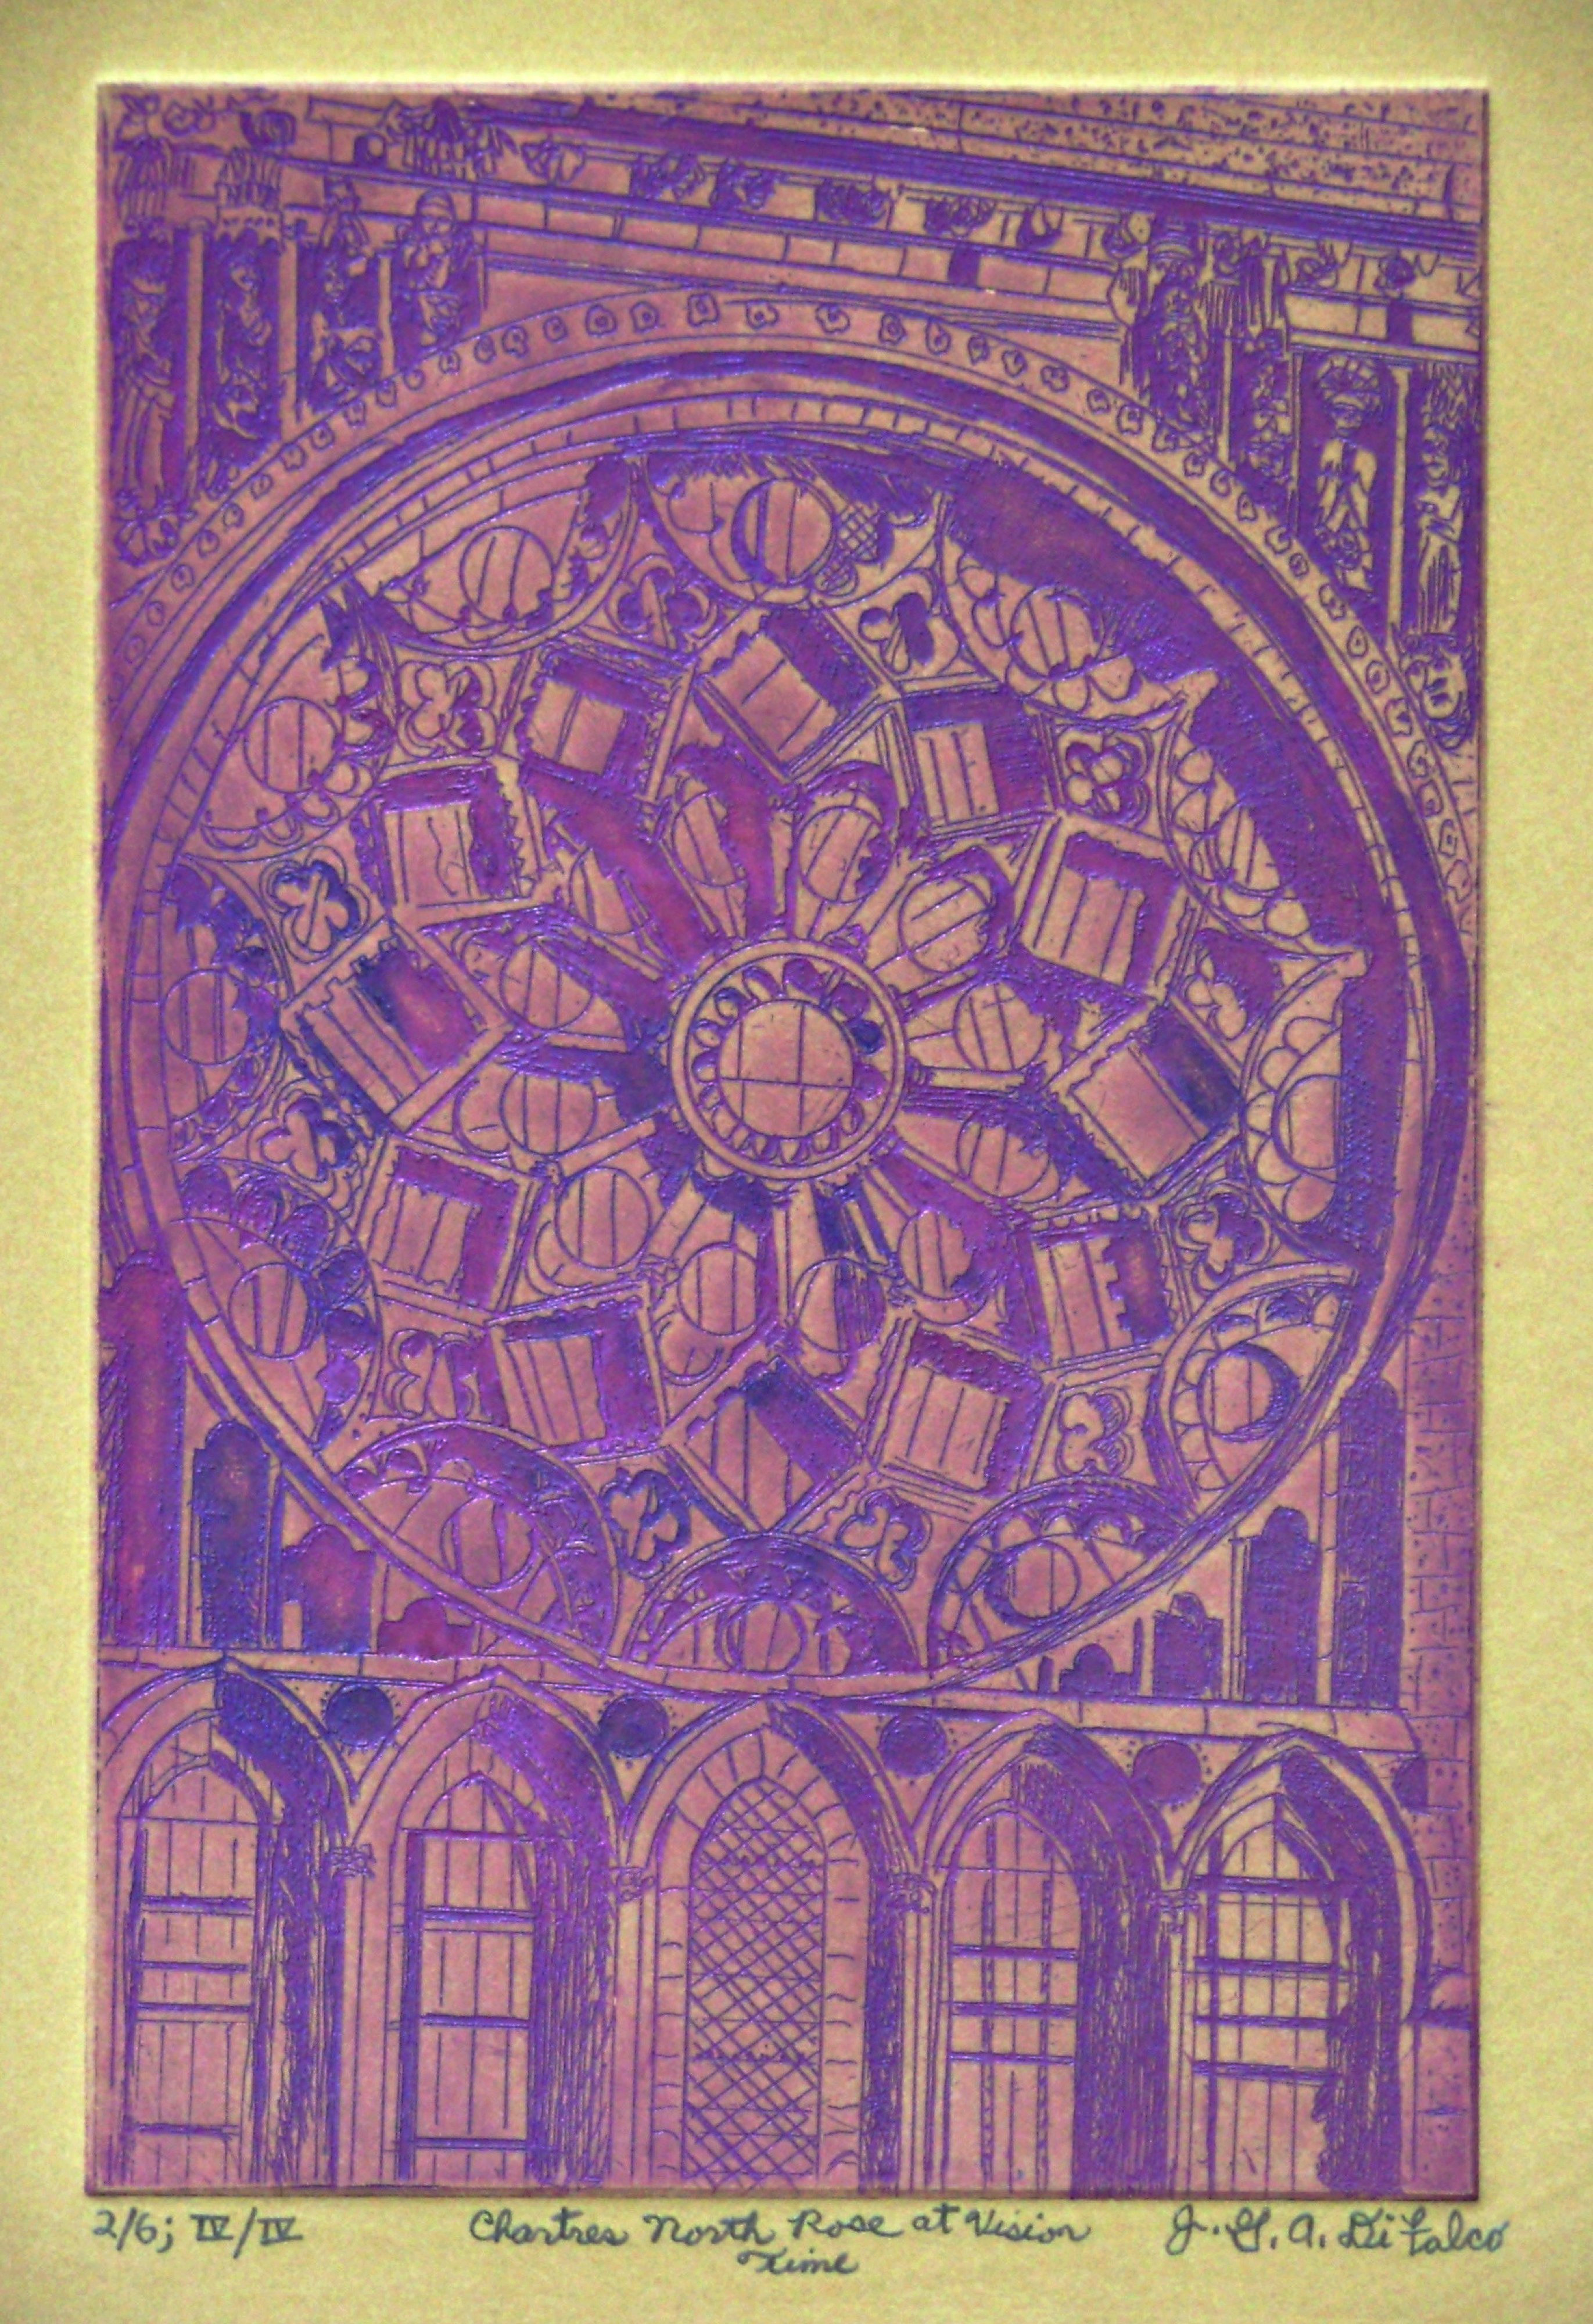 Jerry  Di Falco: 'Chartres North or Rose at Vision Time', 2016 Intaglio, Geometric. This etching, CHARTRES NORTH Rose At Vision Time, is adapted from a Nineteenth Century photograph of the Rose Window in the North Transept of Chartres Cathedral in France. The window, aside from being an architectural meditation, holds Judaic, Christian, and Islamic secrets in its design details, which include floating Hebrew ...